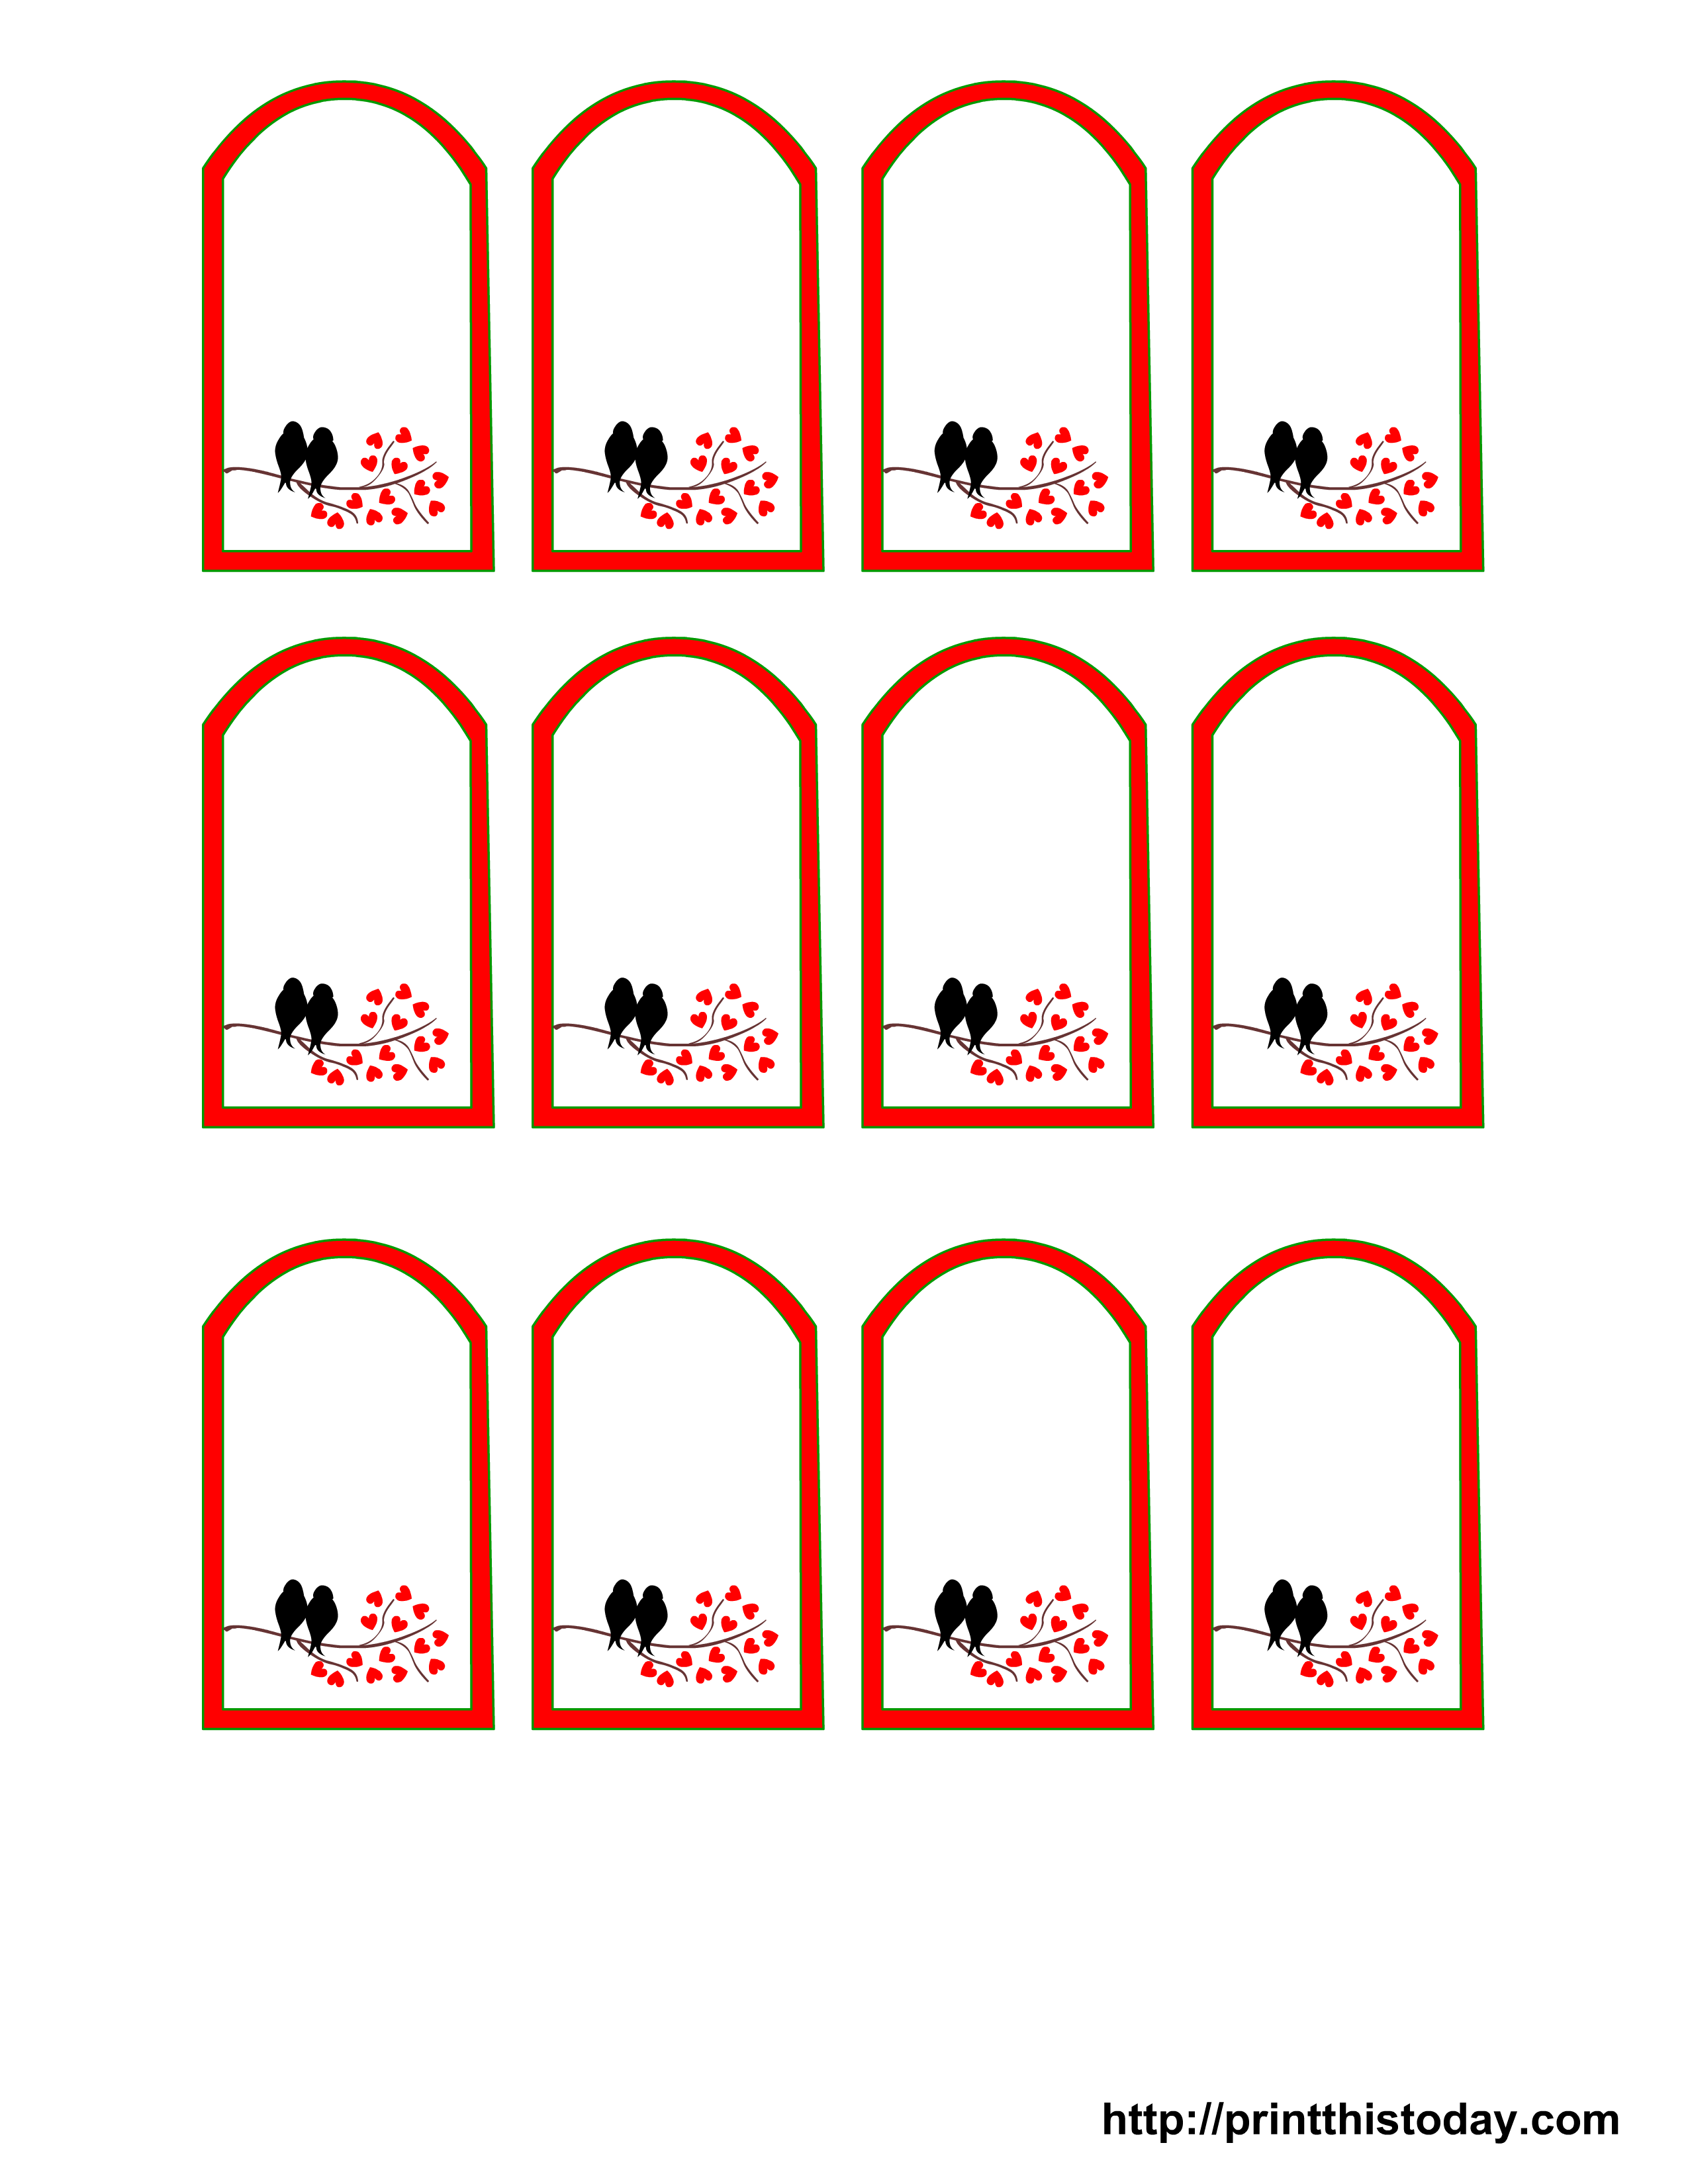 7 Images of Printable Favor Tags